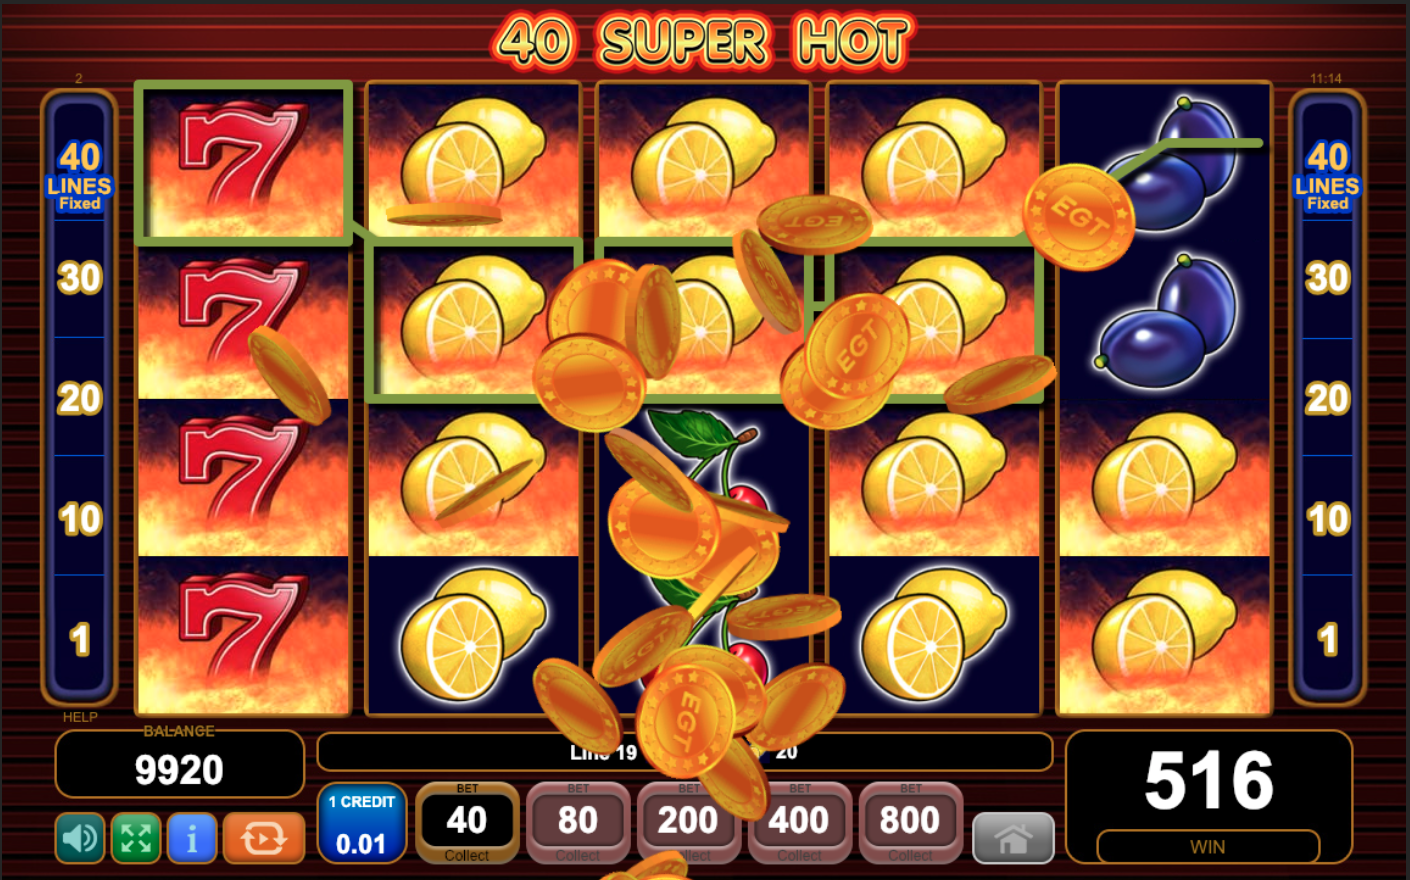 40 super hot slot free play